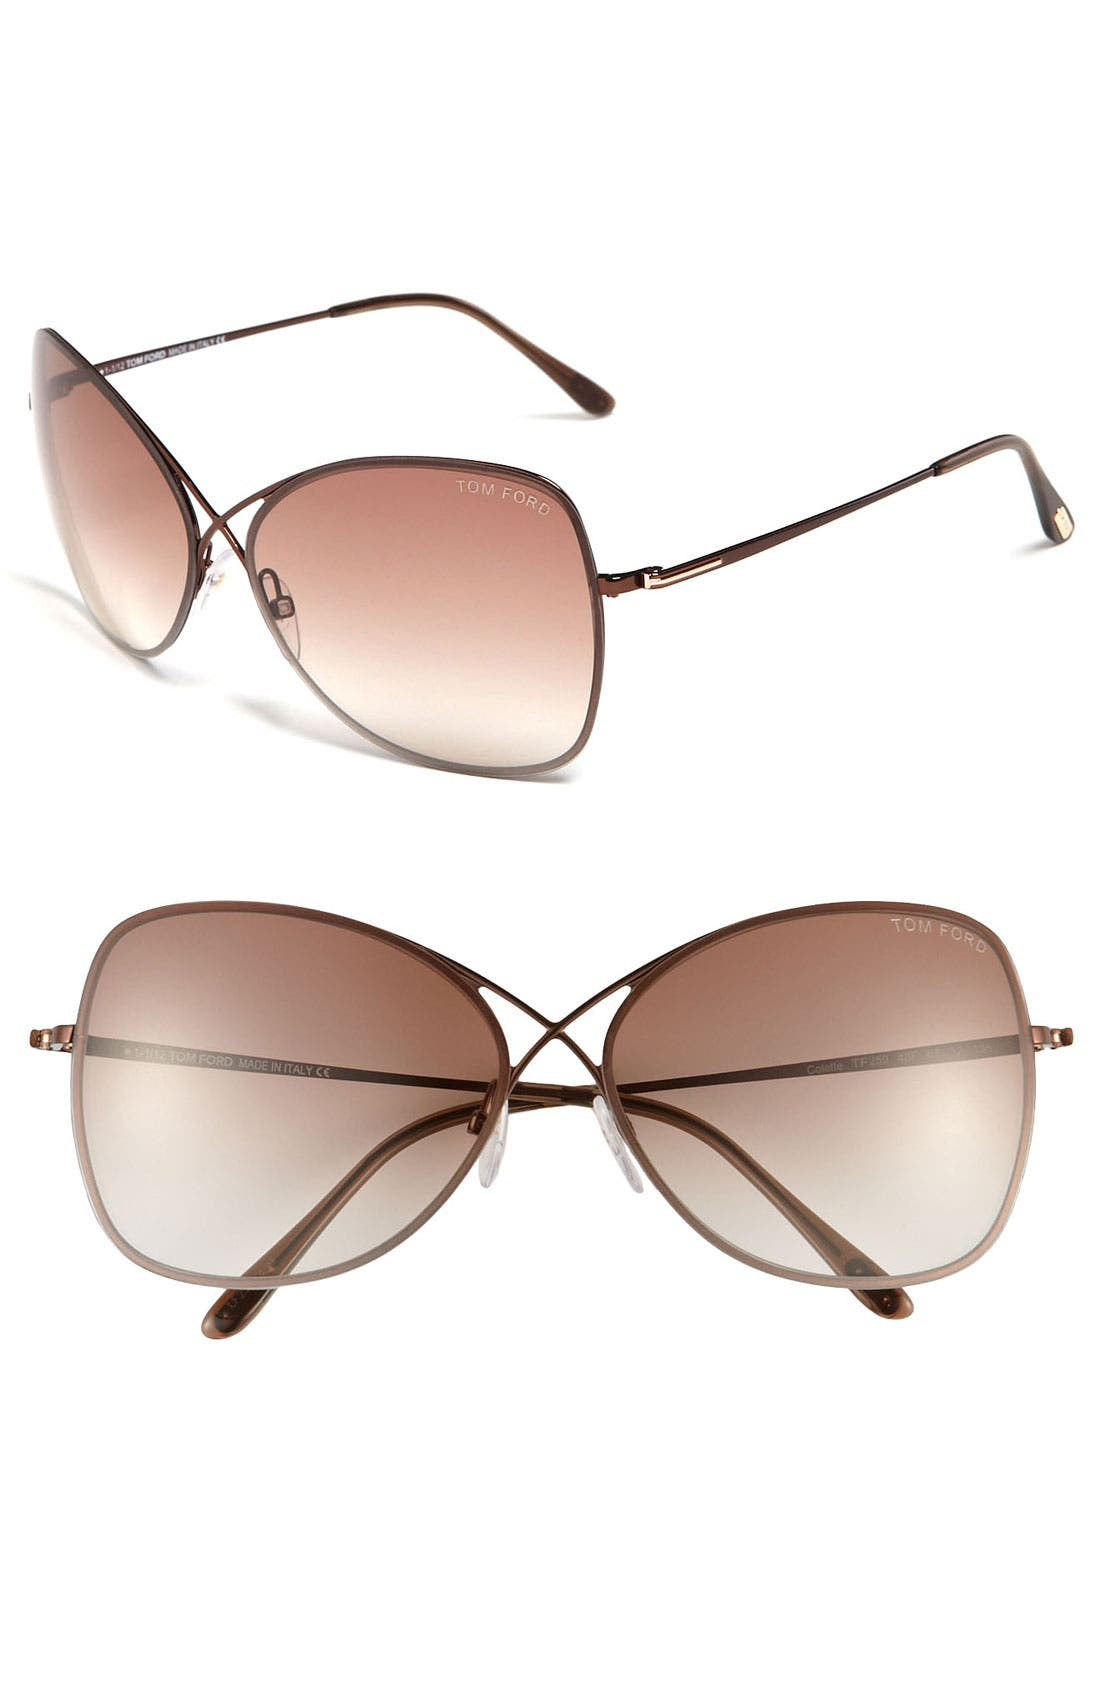 Main Image - Tom Ford 'Colette' 63mm Oversized Sunglasses